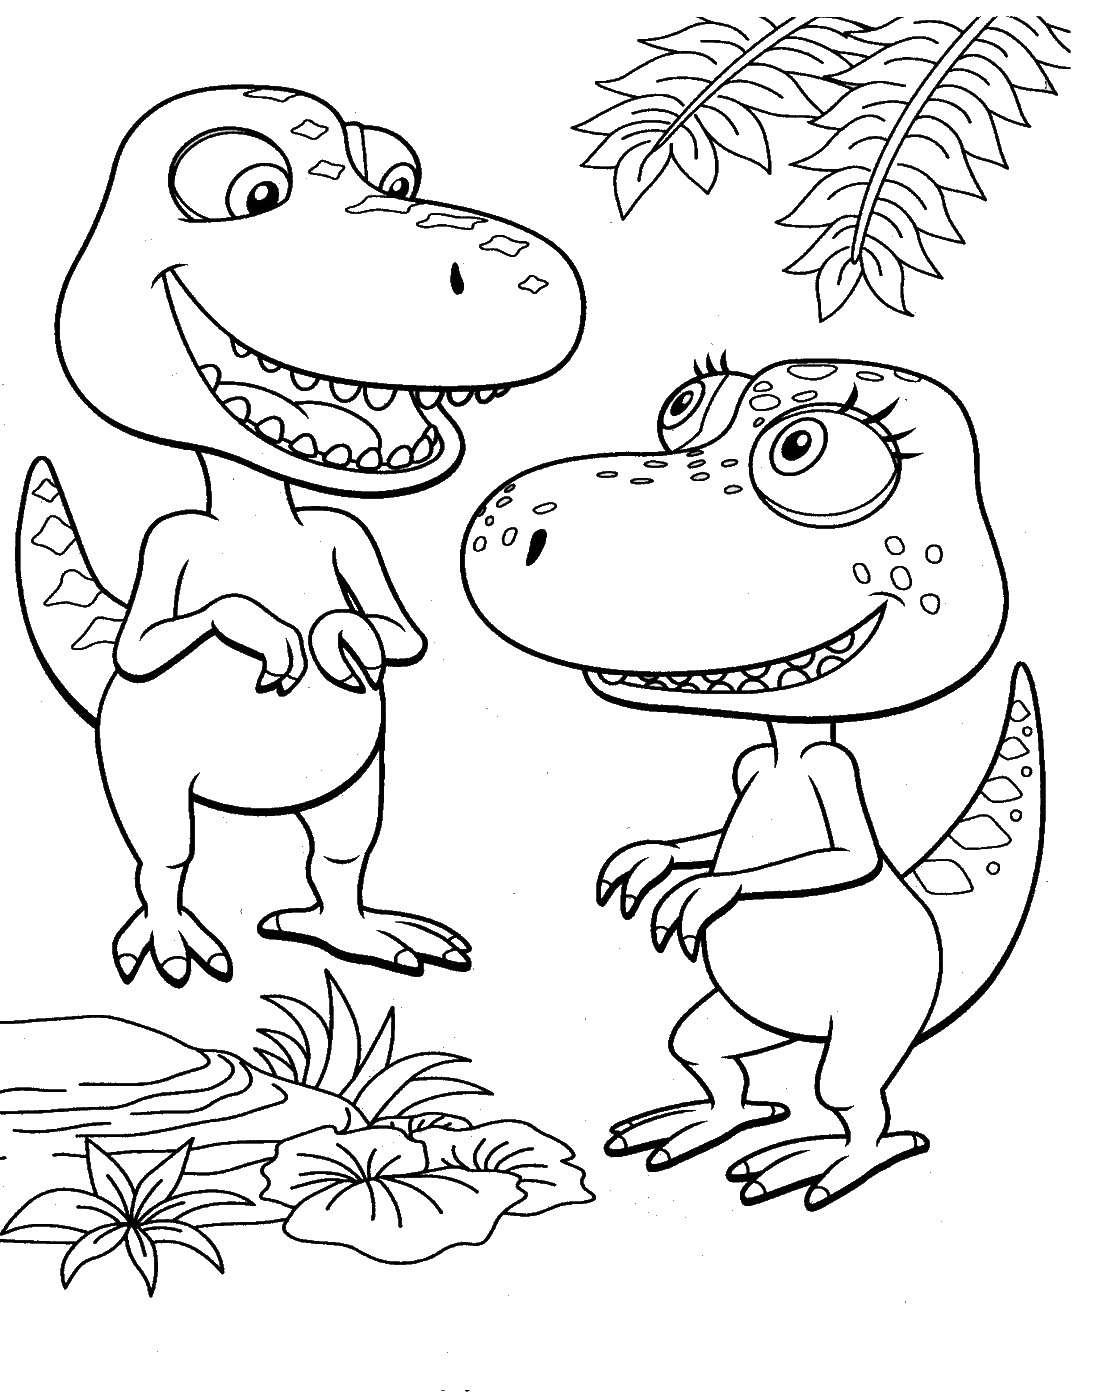 Dinosaur train coloring pages dinosaurs pictures and facts Coloring book dinosaurs